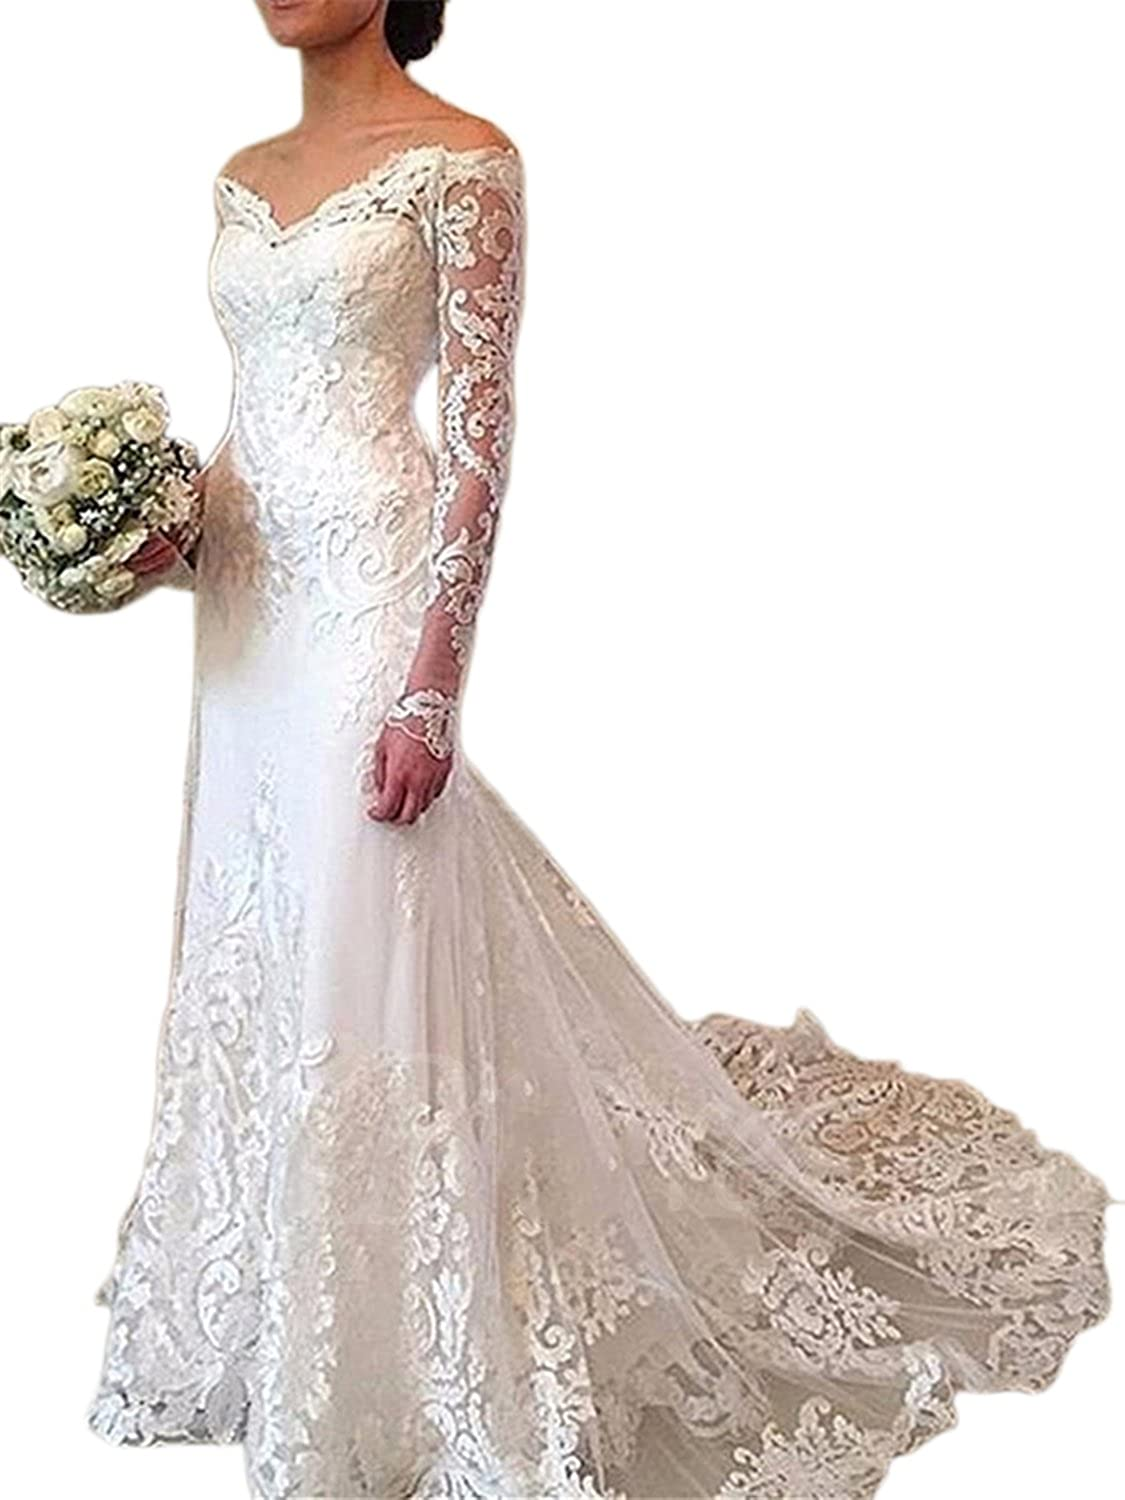 Annxpink Women's Long Sleeve Off The Shoulder Lace Appliques Tulle Mermaid Wedding Dress Bridal Gown